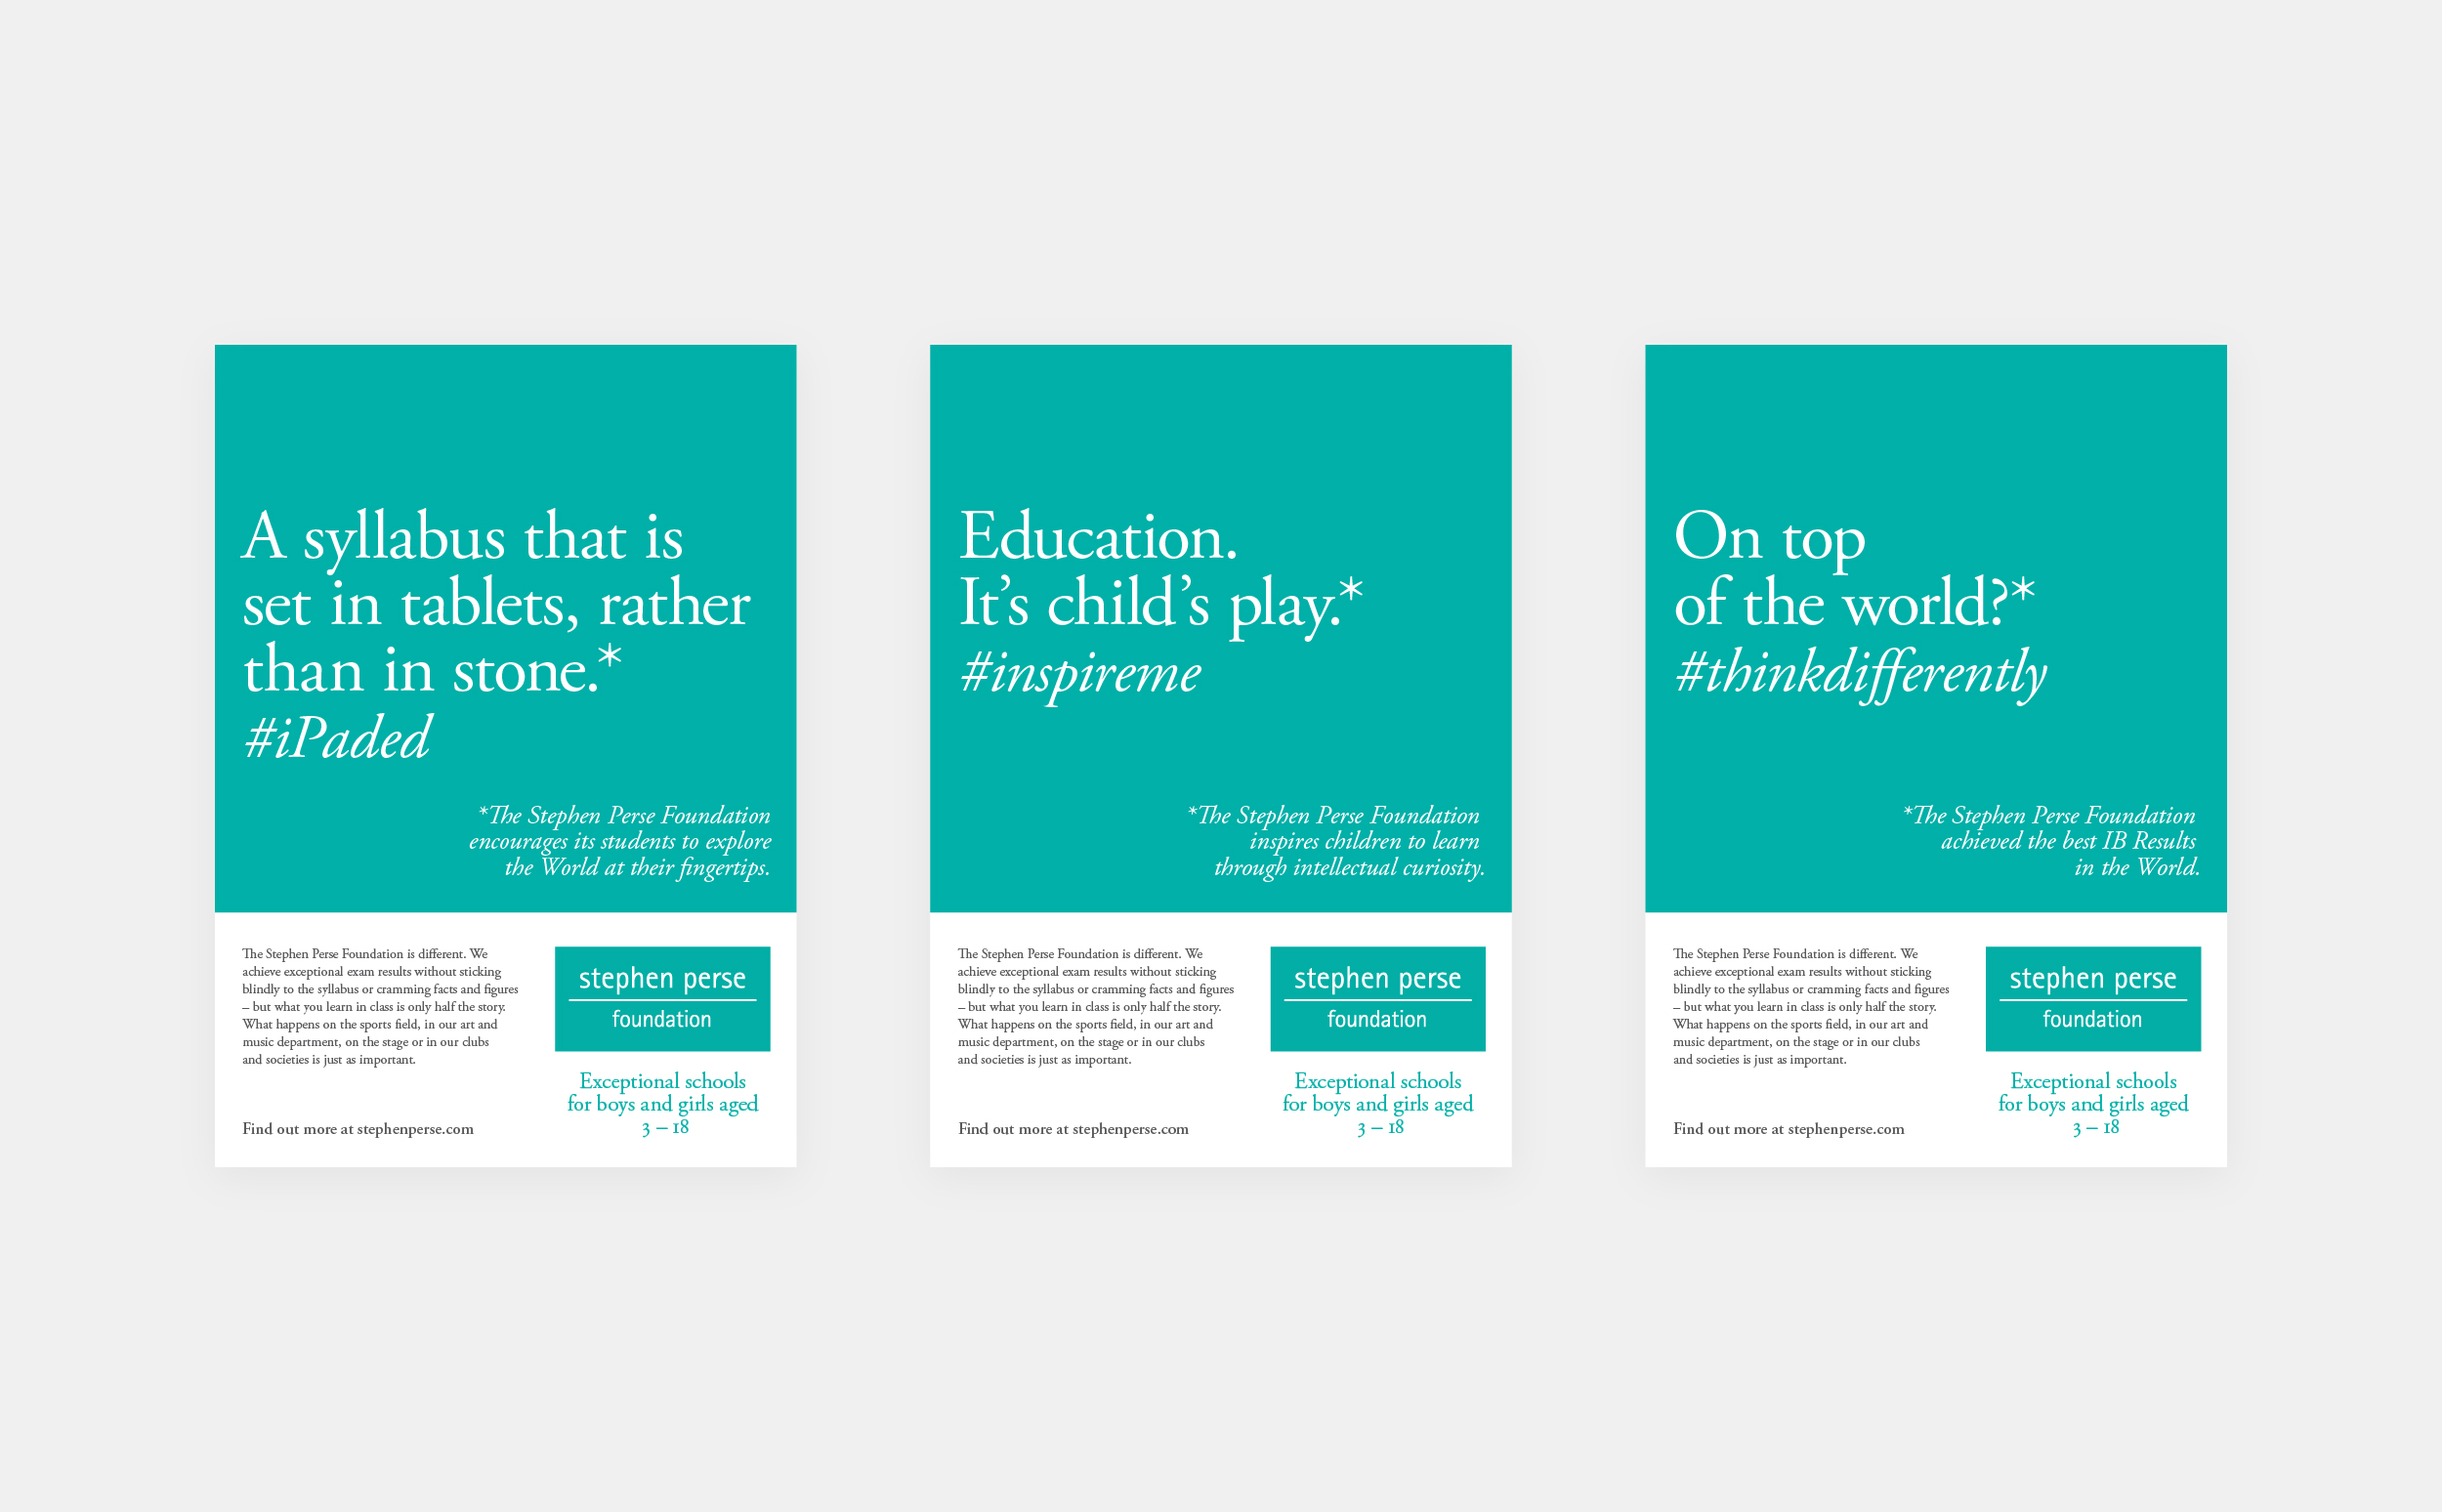 Stephen_Perse_Foundation_Advertising_Posters-01